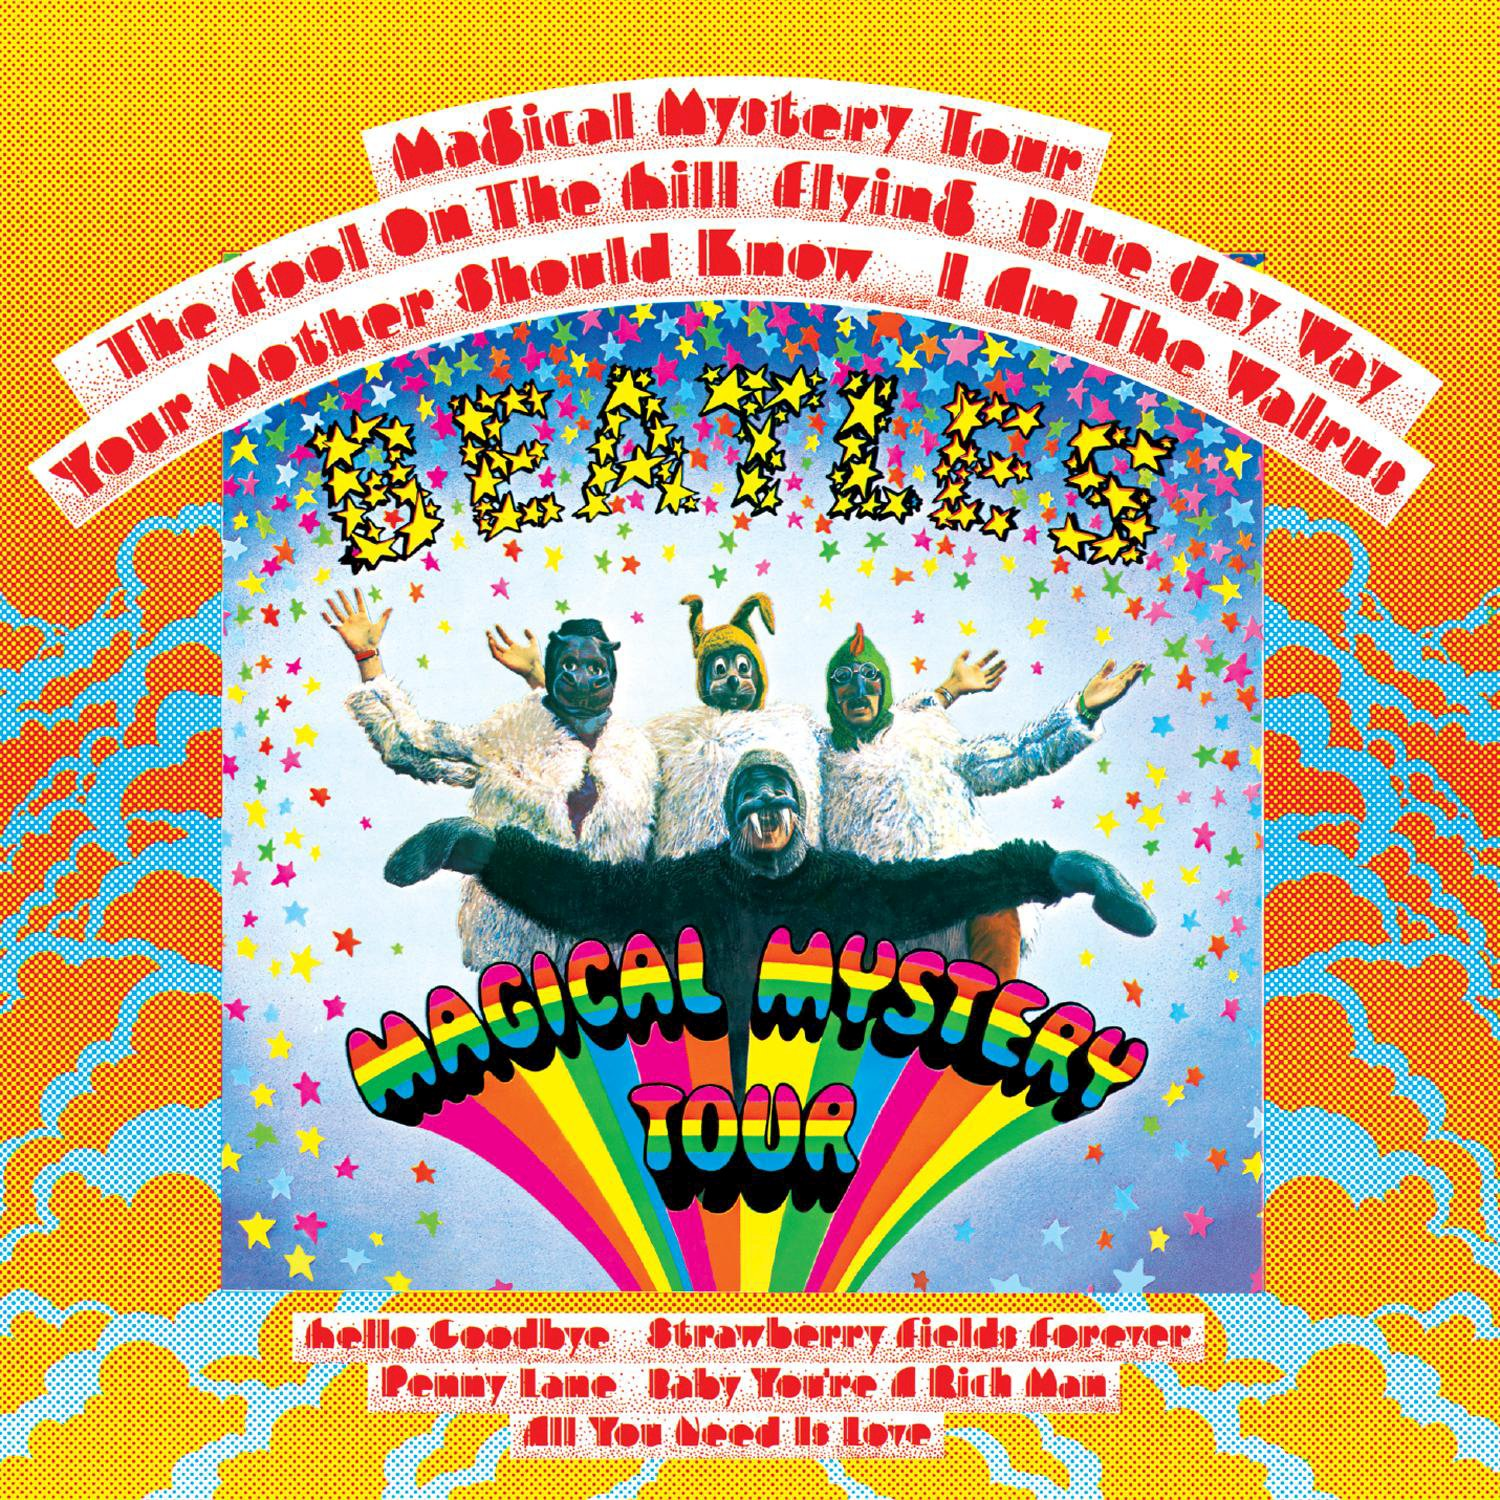 The Beatles – Magical Mystery Tour (REISSUE REMASTERED LP) (2017) [FLAC]